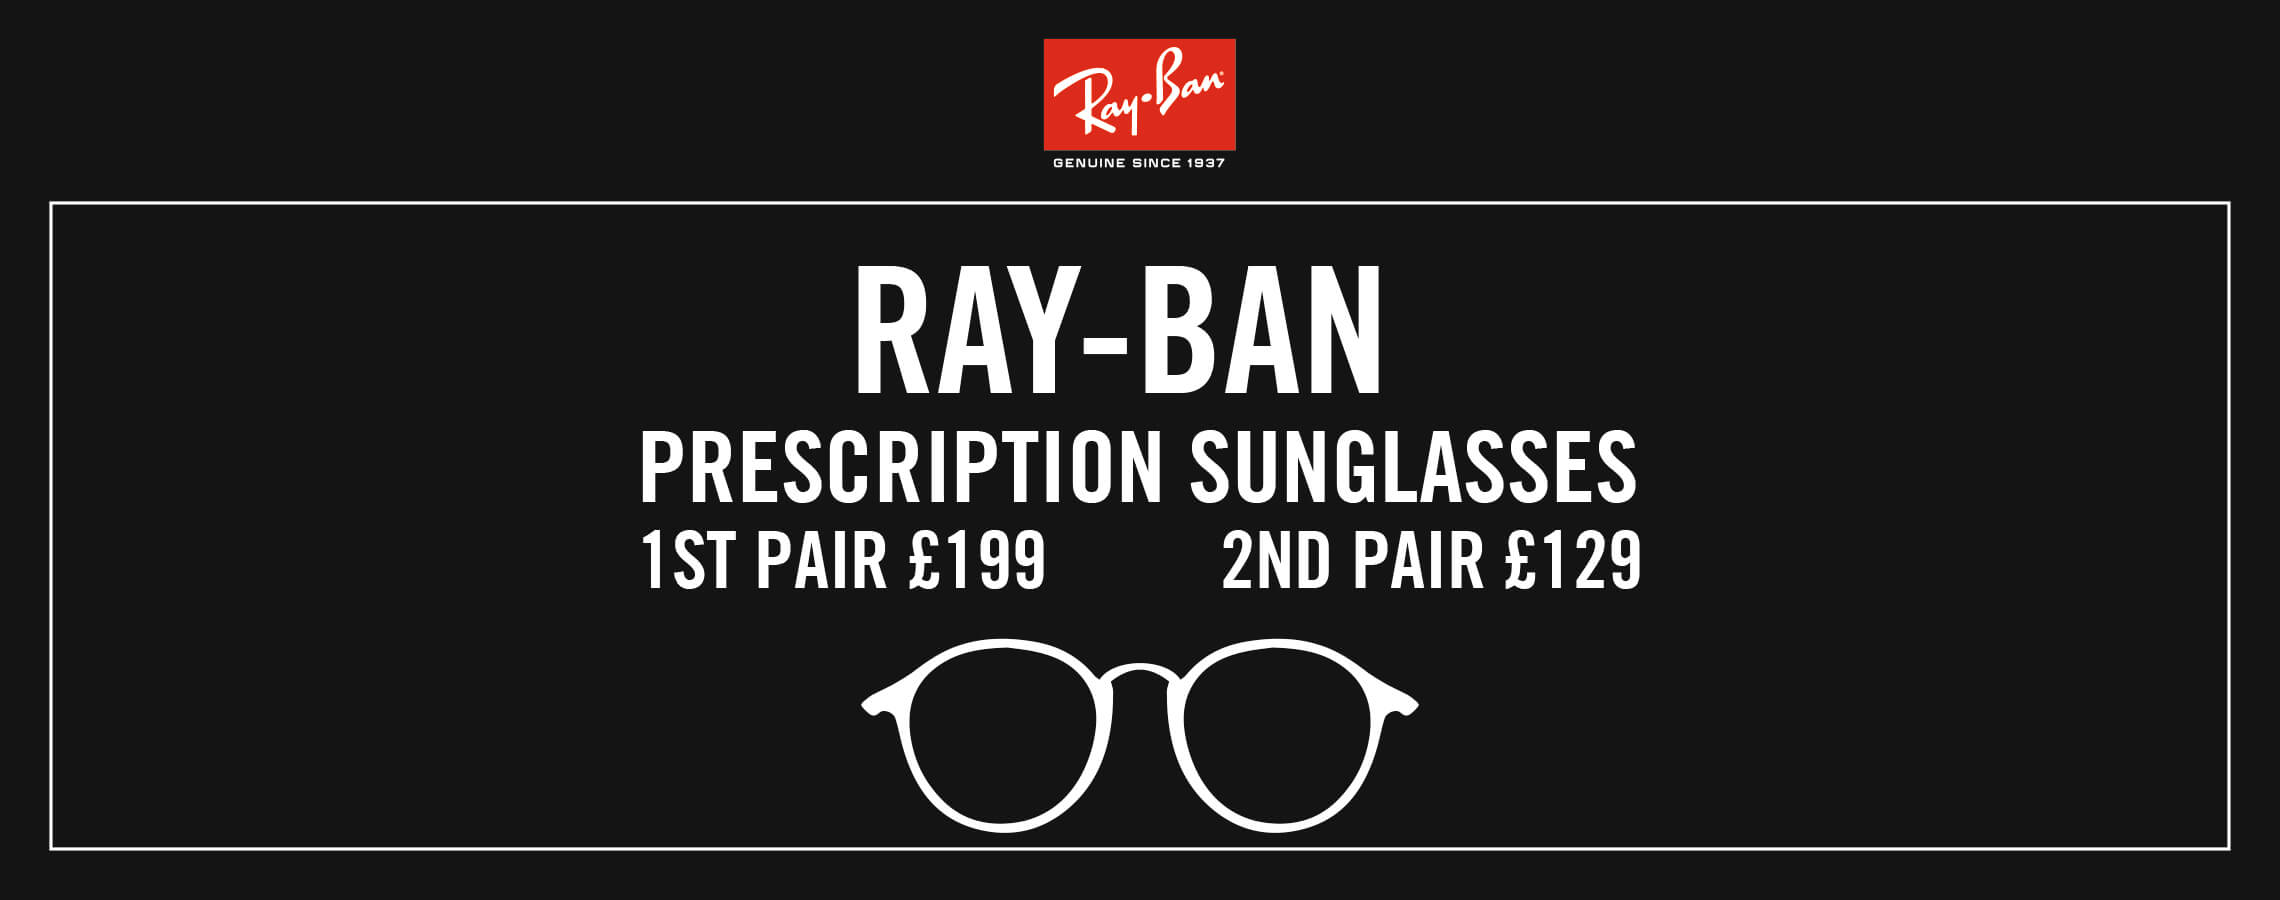 DC_Ray-Ban_offer_2280 x 900